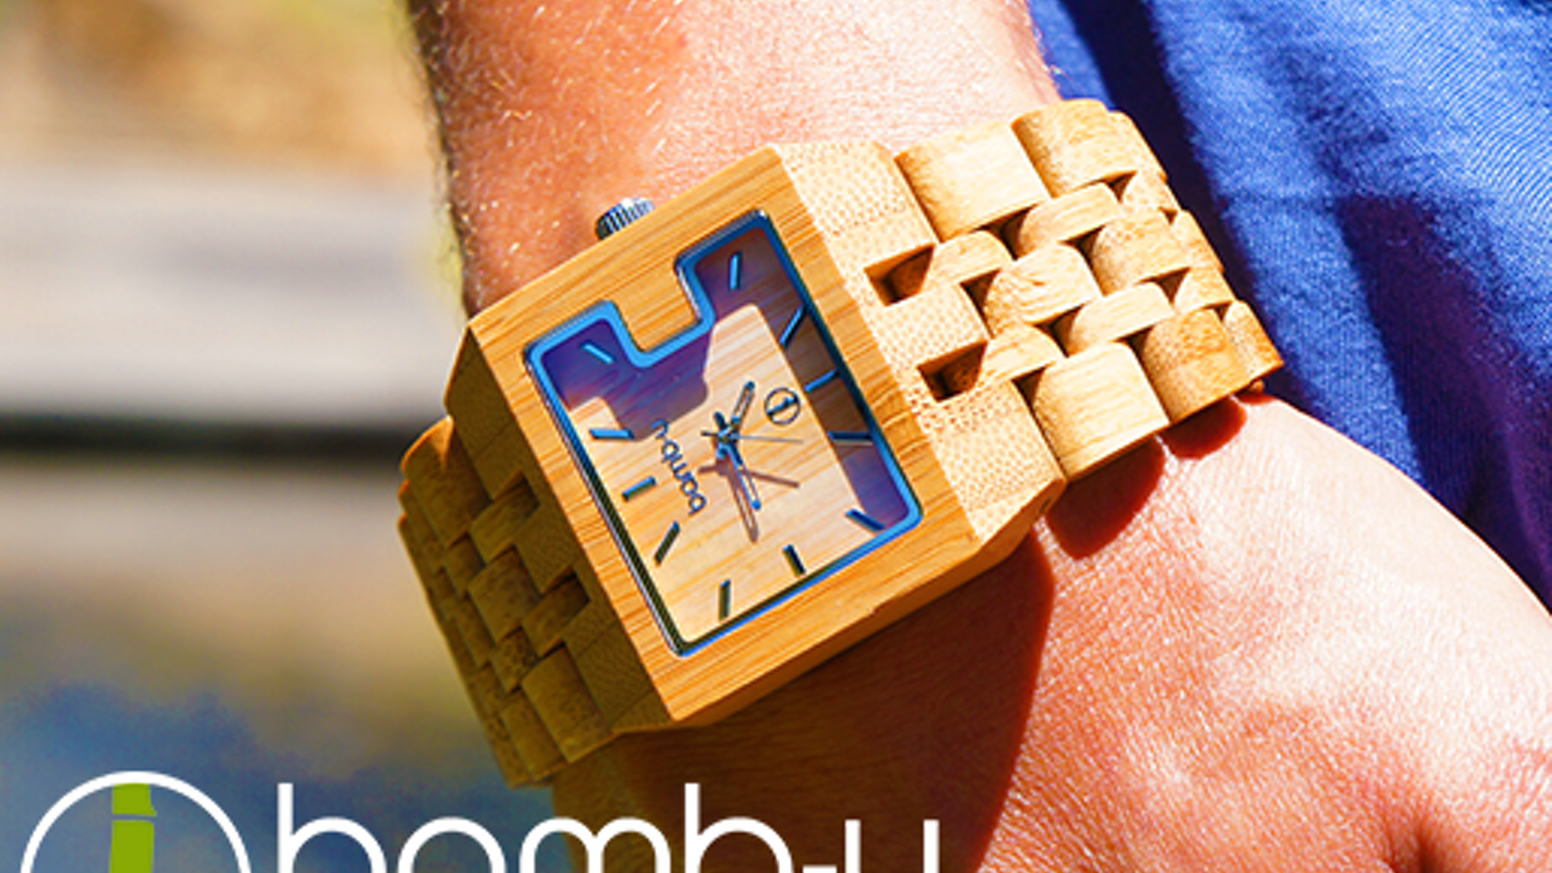 Introducing the natural collection. Australia's first and only all bamboo collection of watches by bamb-u.